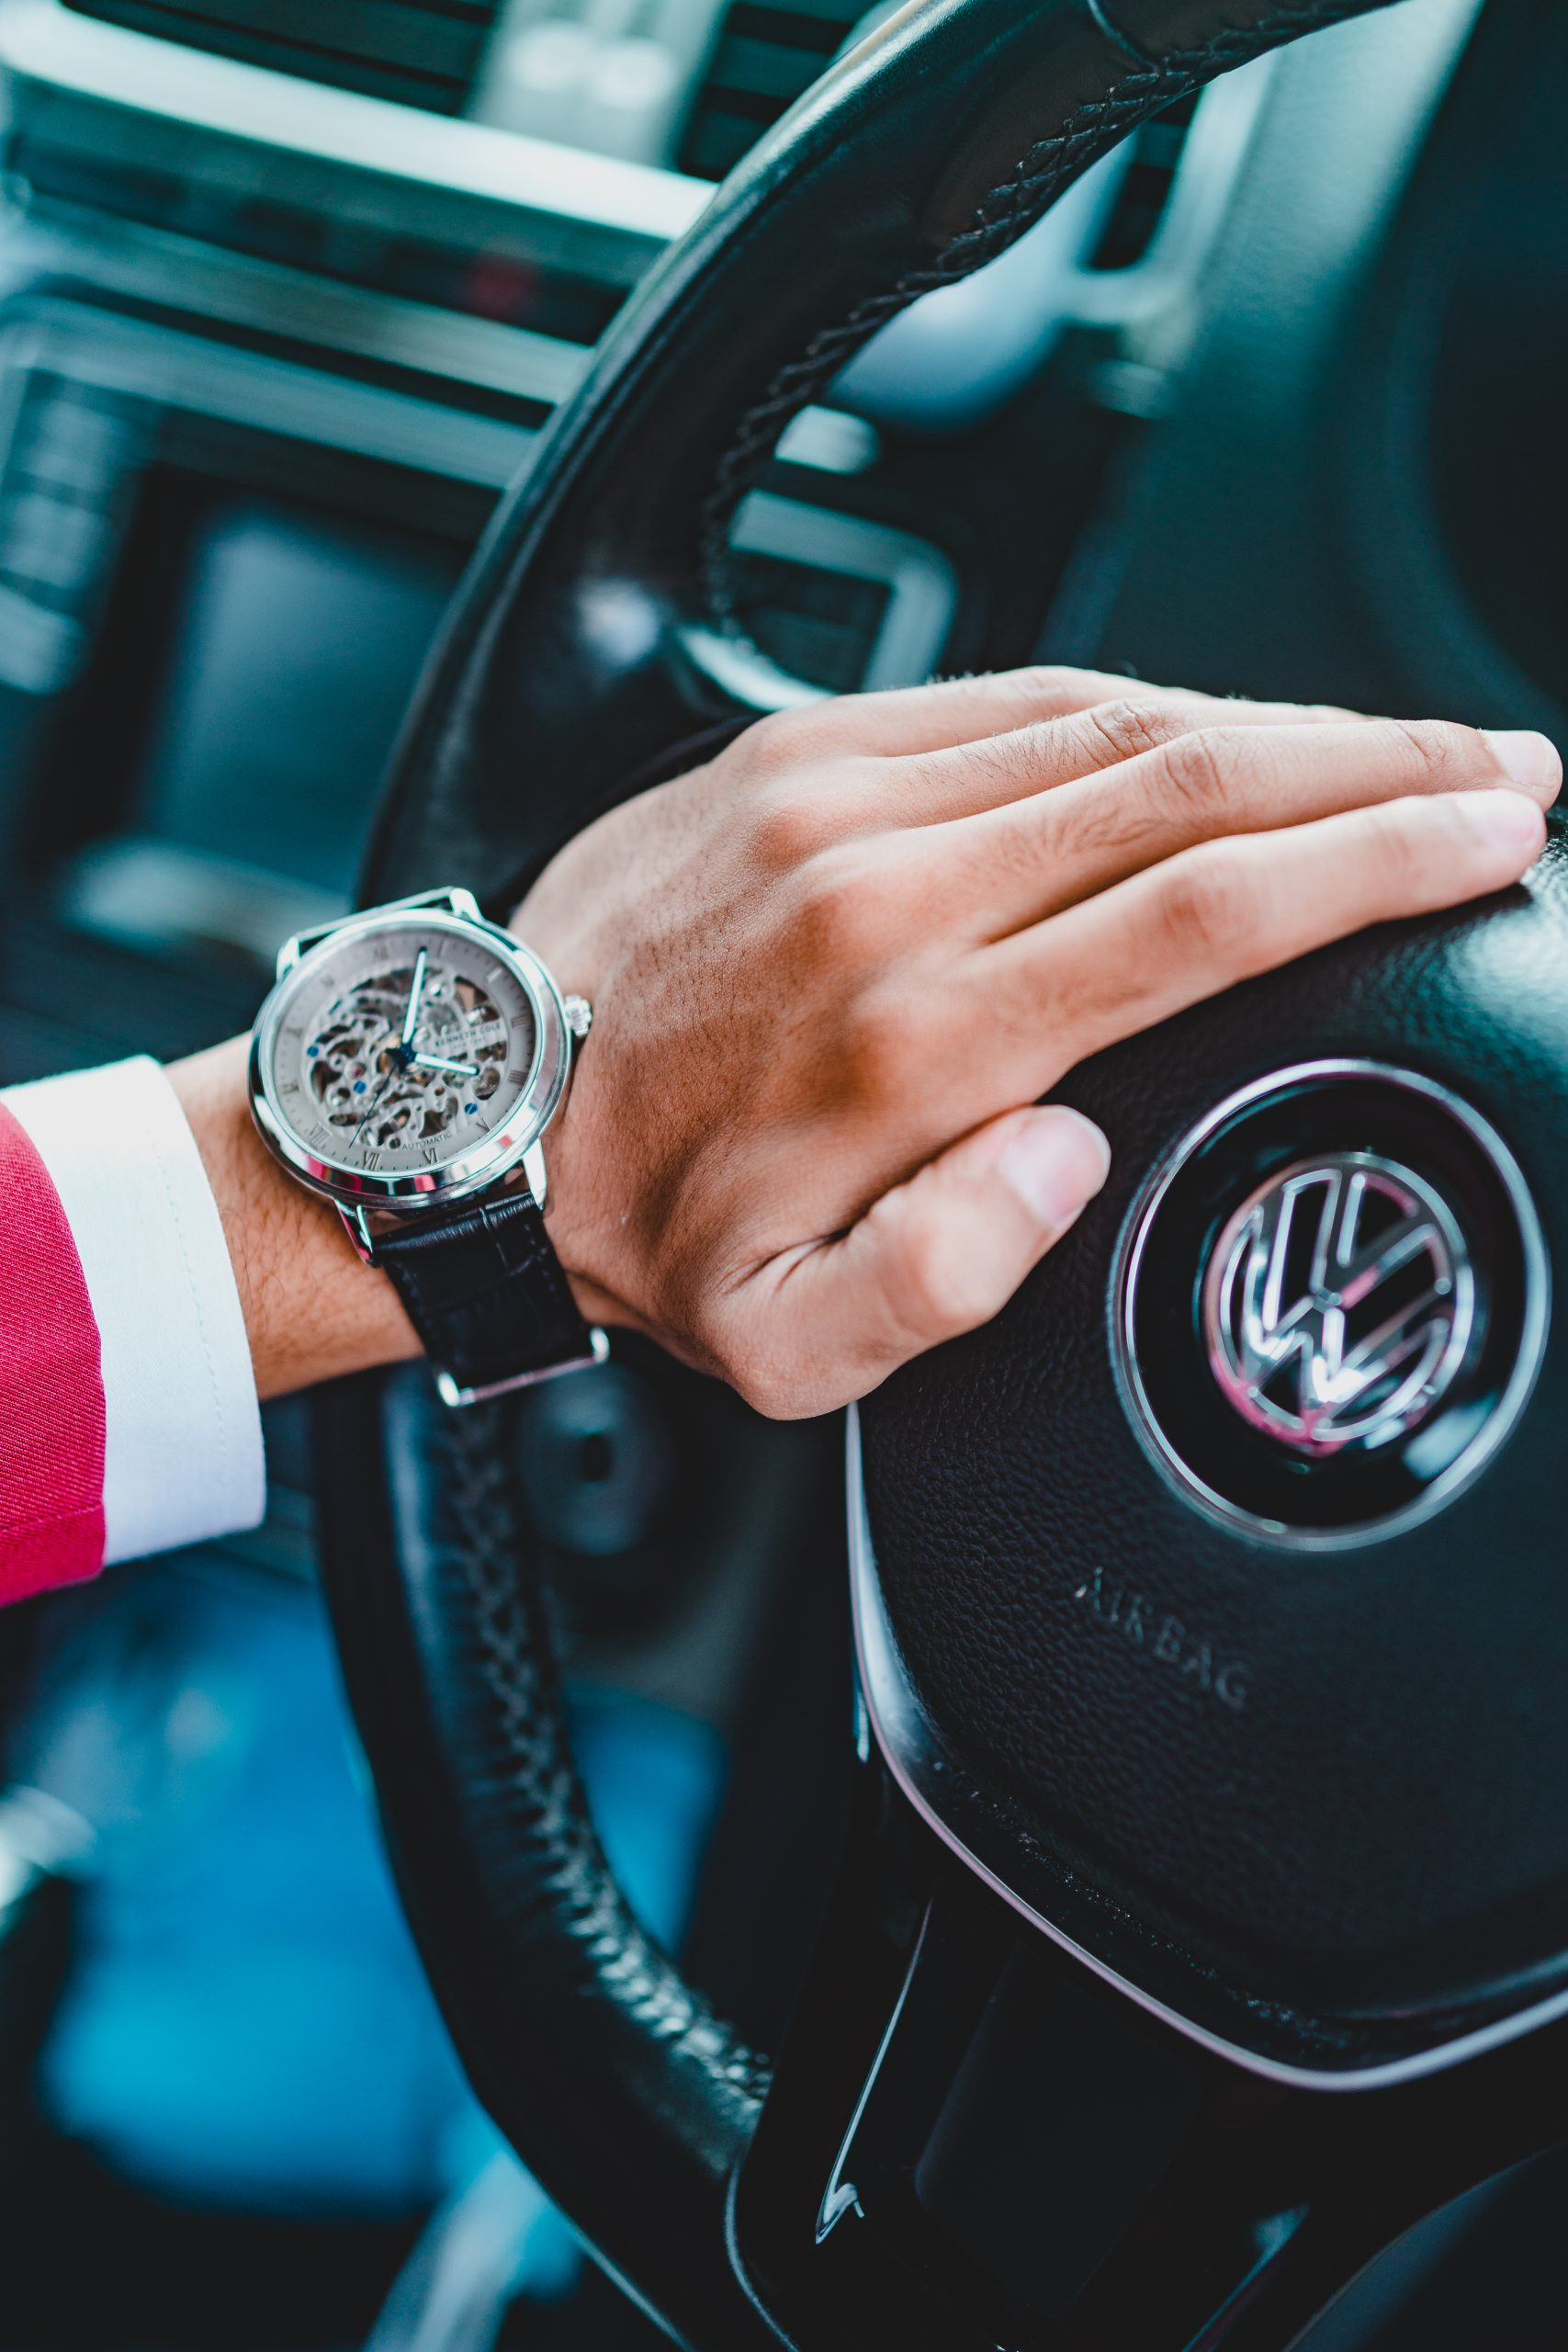 Wrist watch and steering wheel